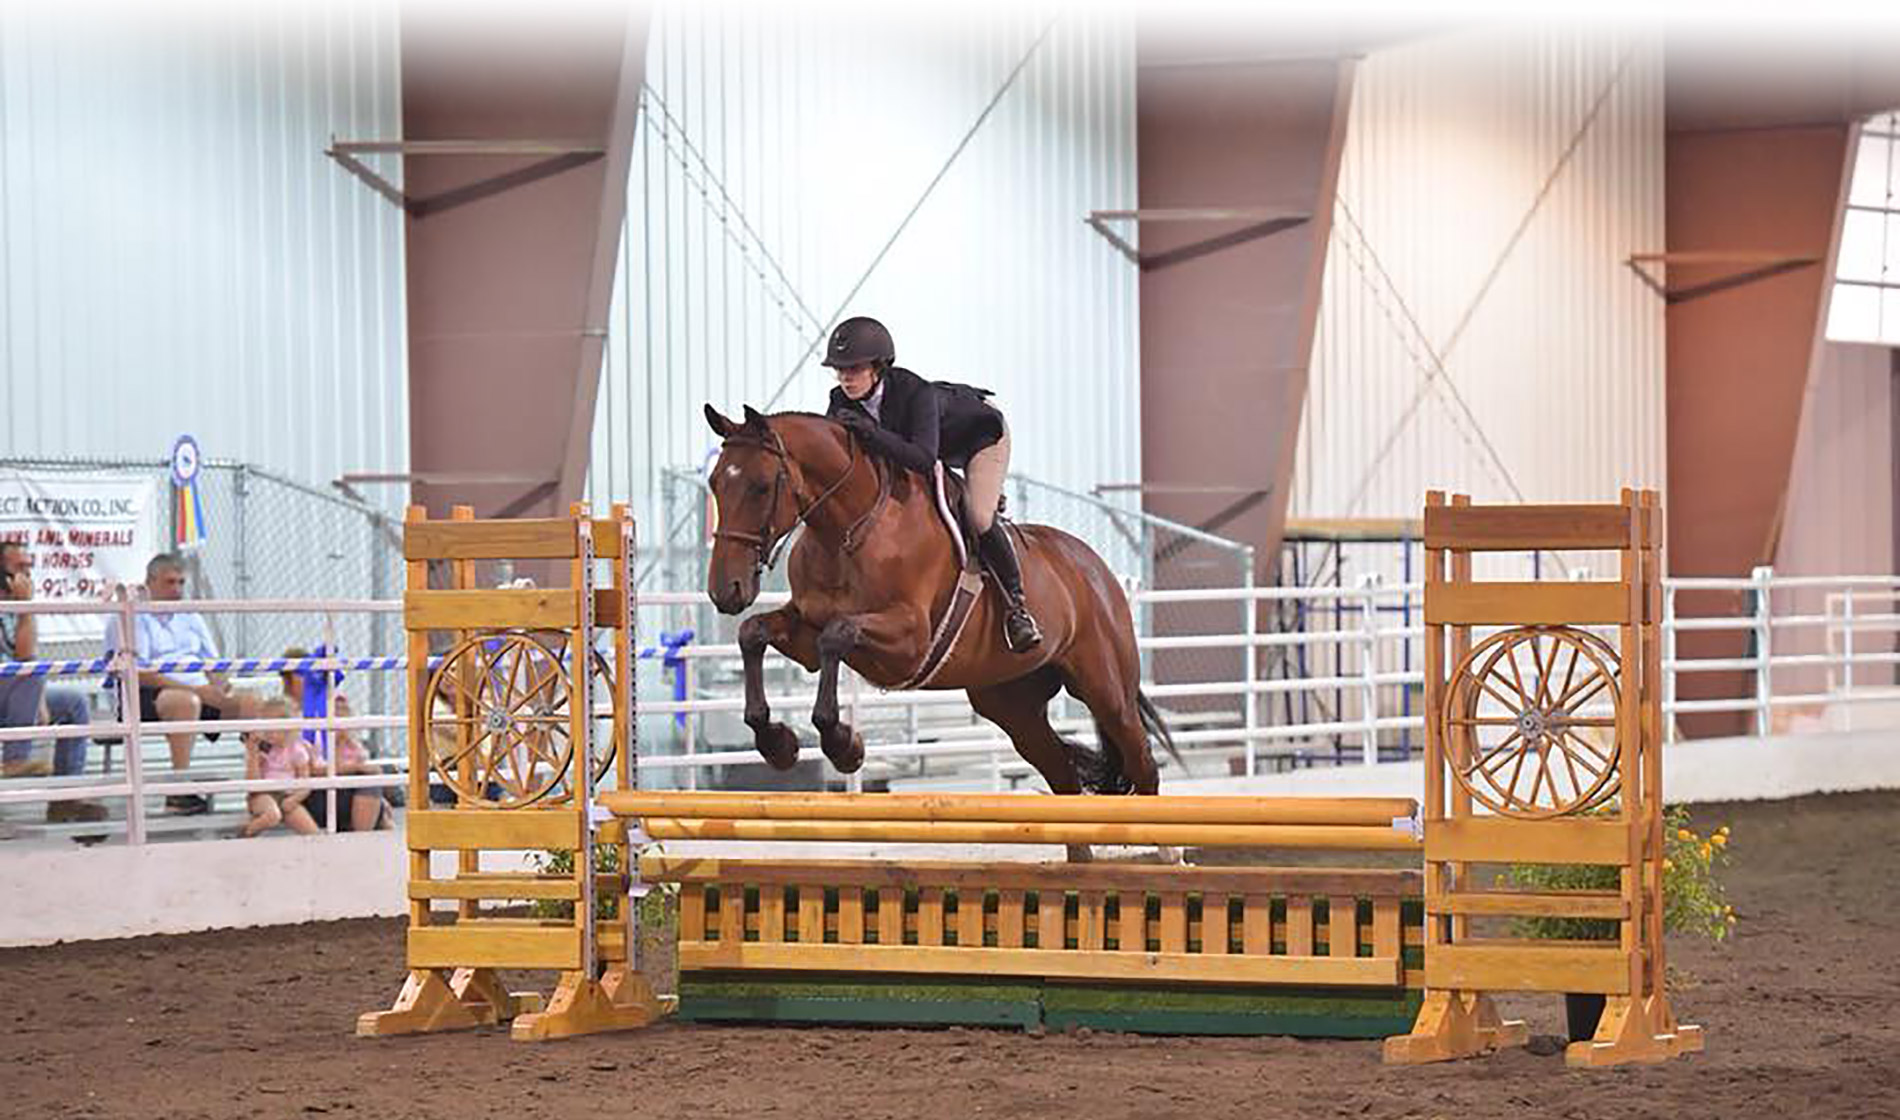 Megan Danforth riding Impeccable hunters